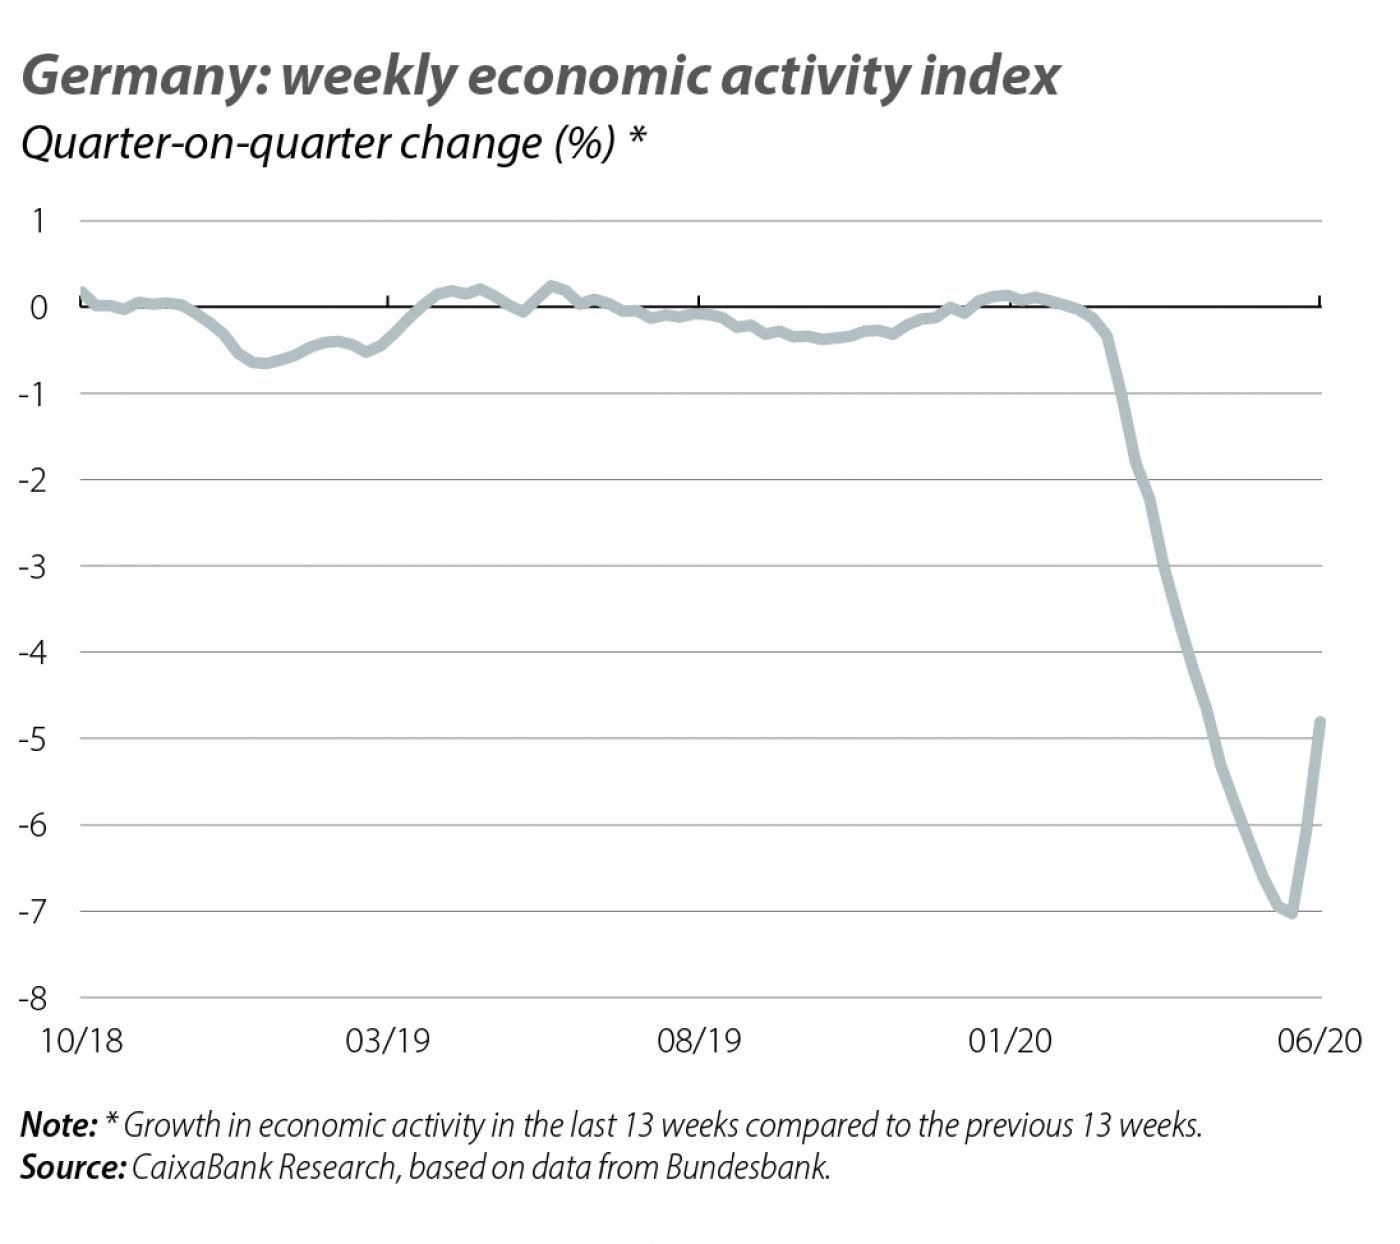 Germany: weekly economic activity index